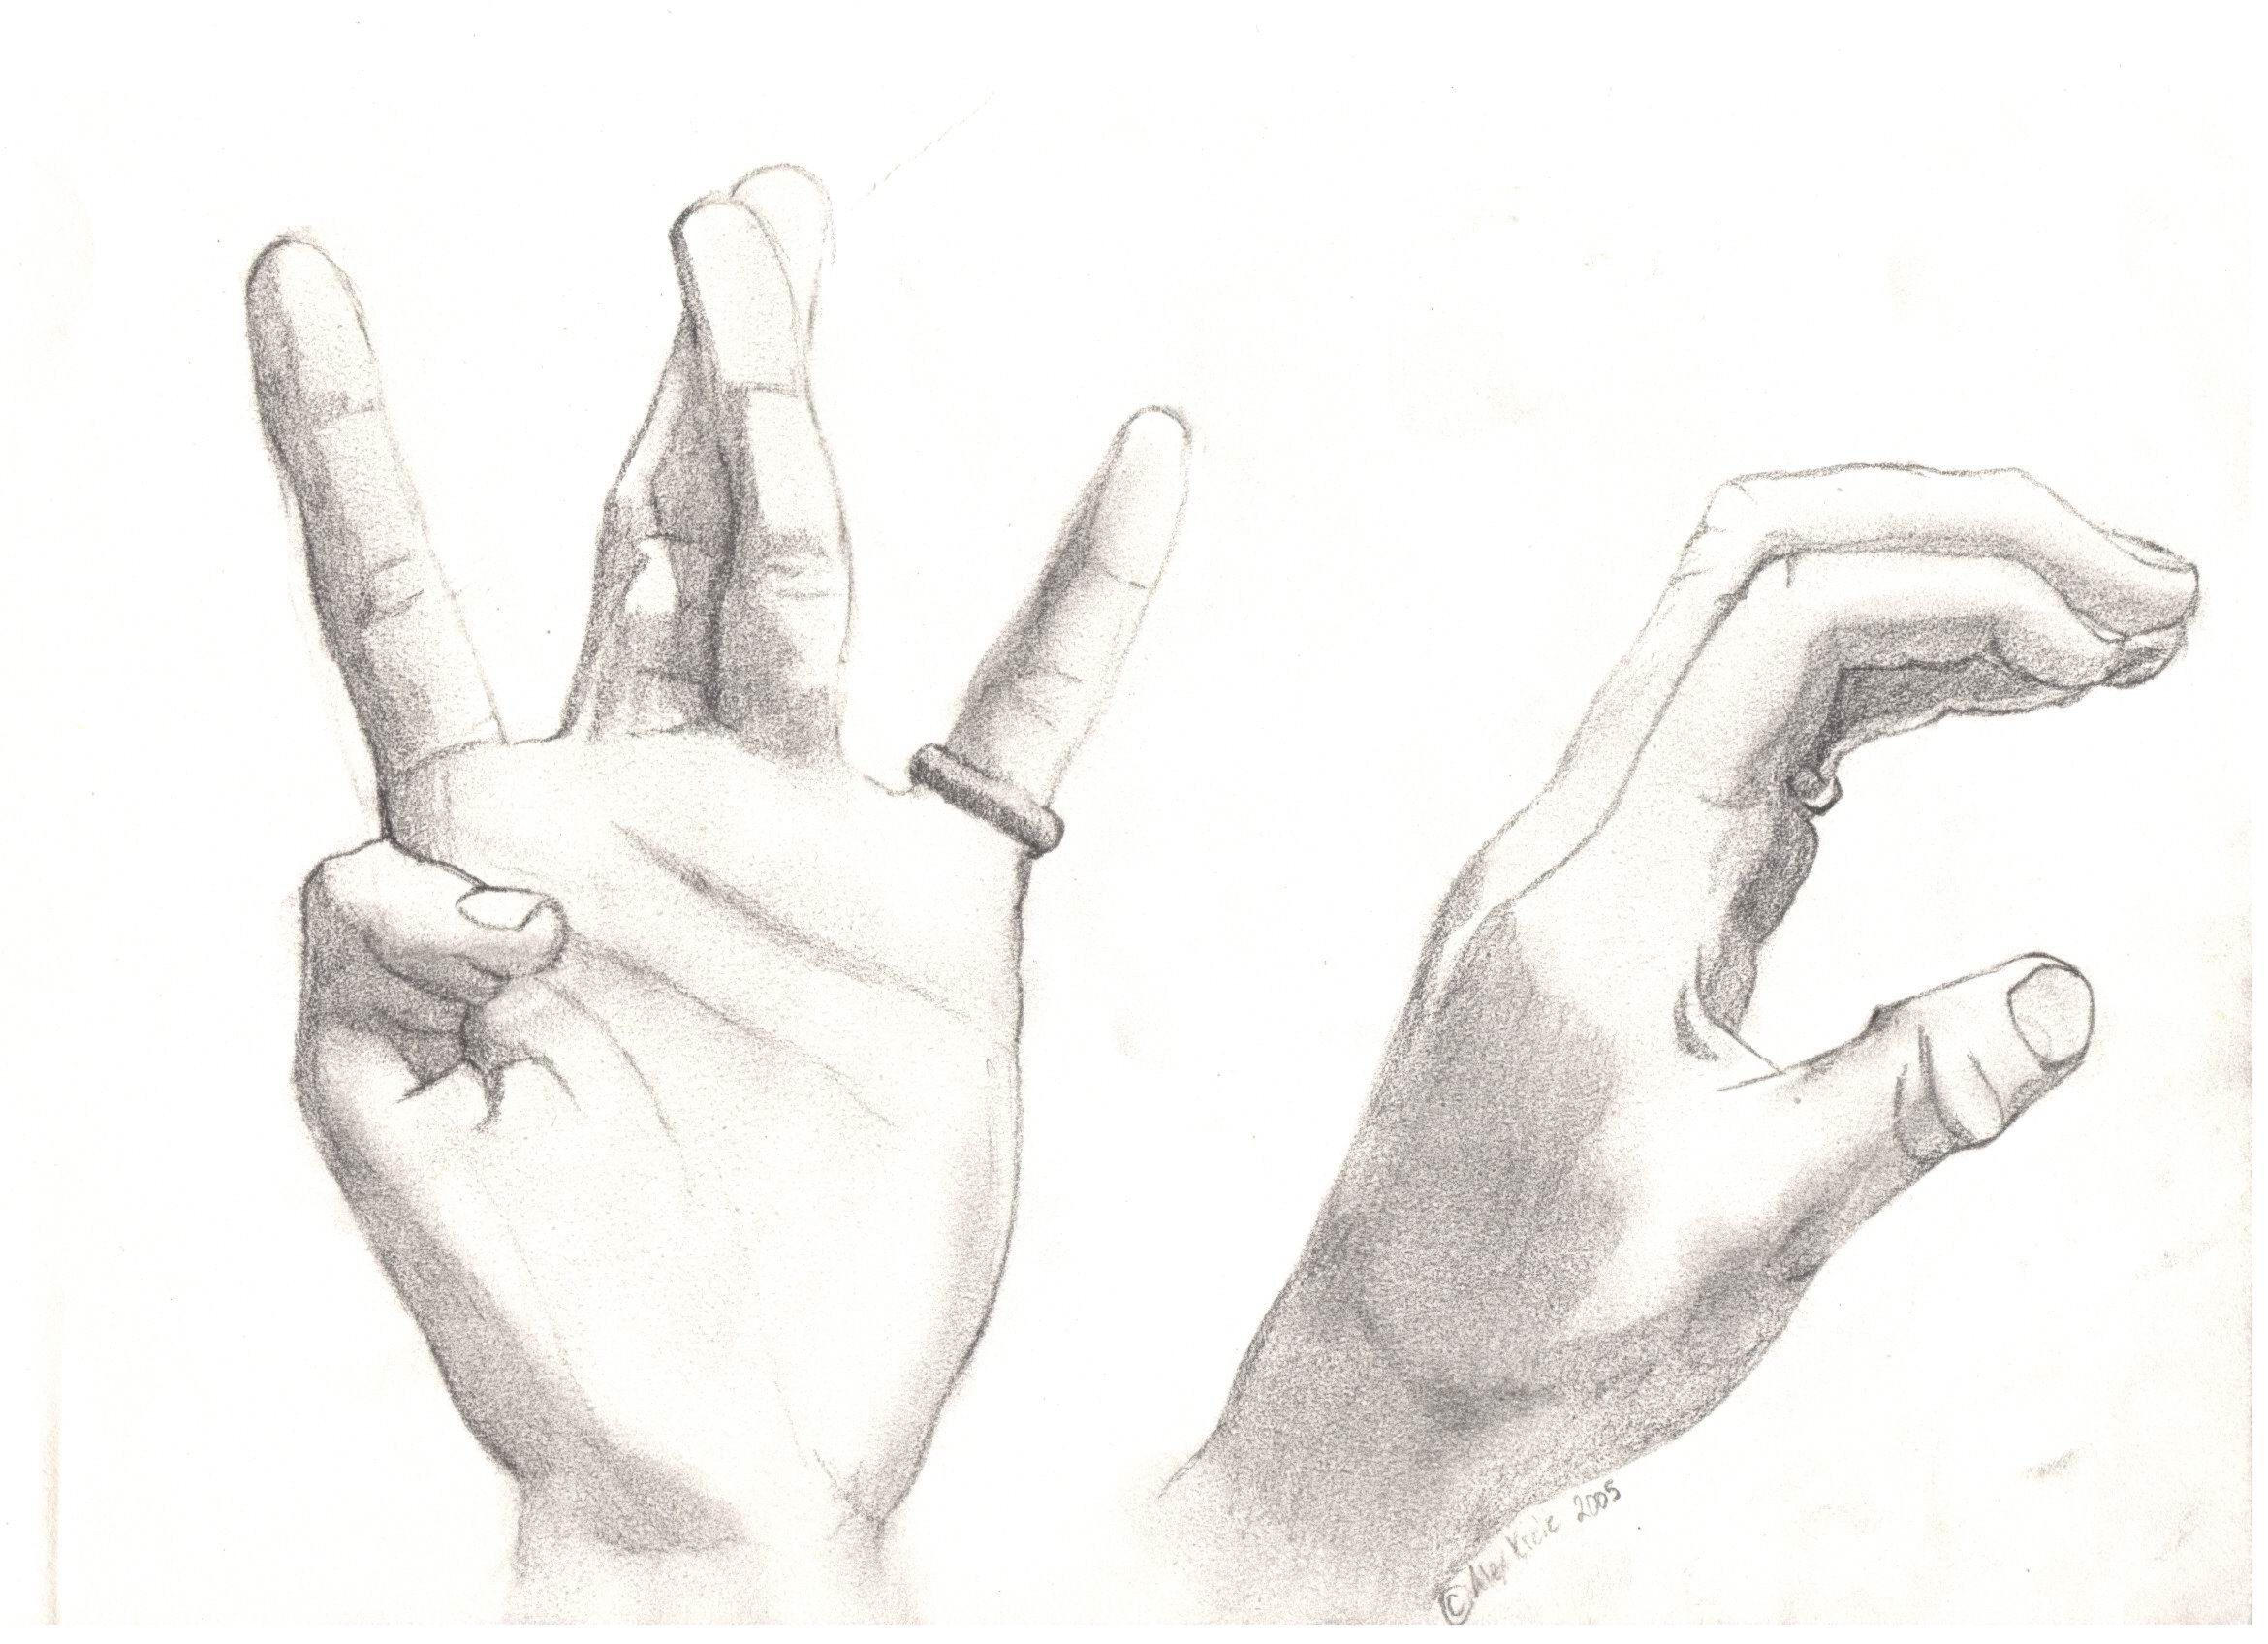 Hand drawing by satsujin ken on deviantart for Easy hand drawings